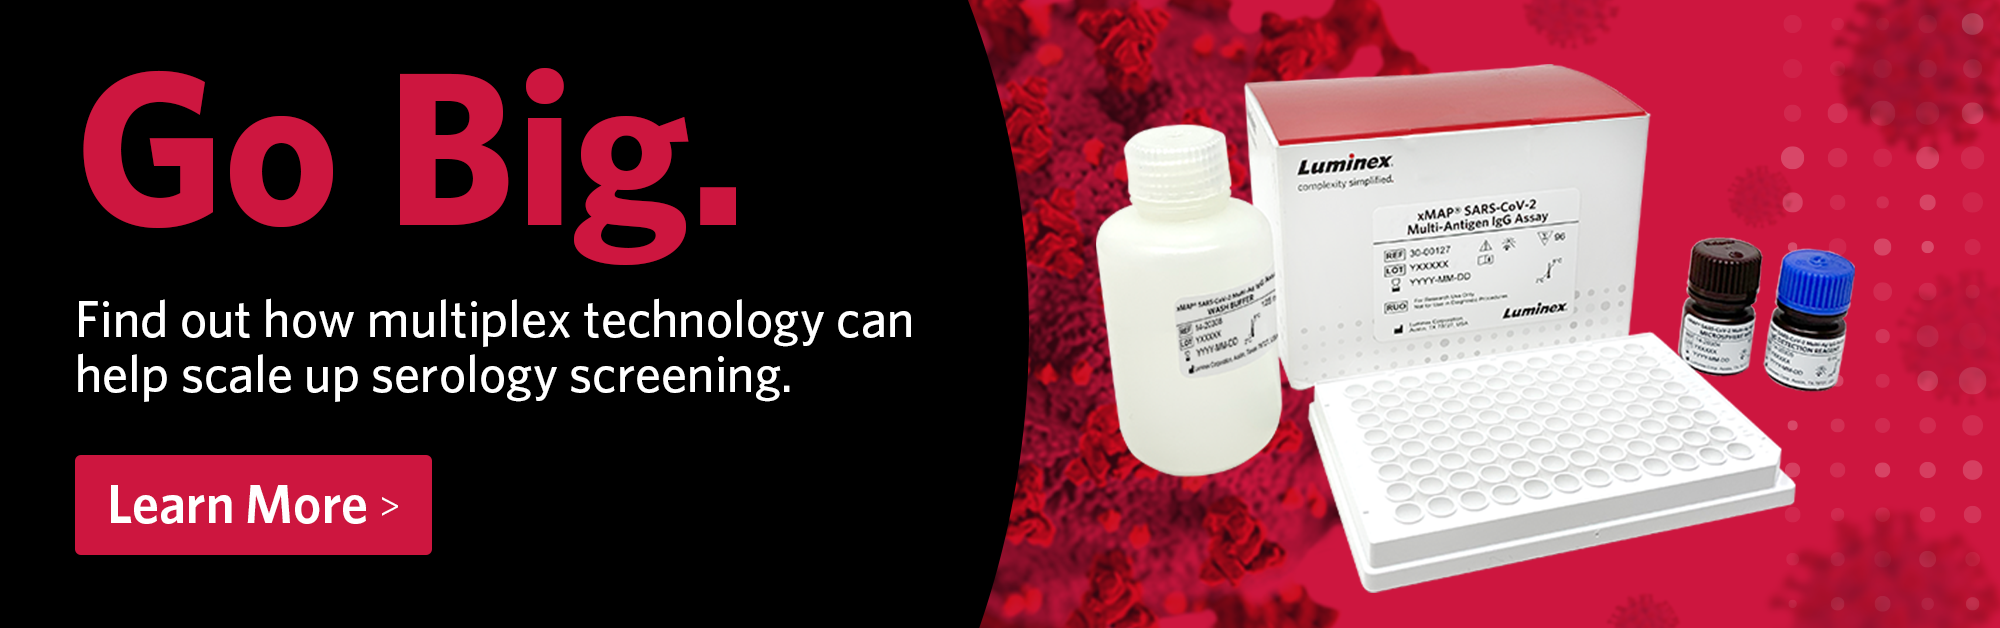 Find out how multiplex technology can help scale up serology screening.